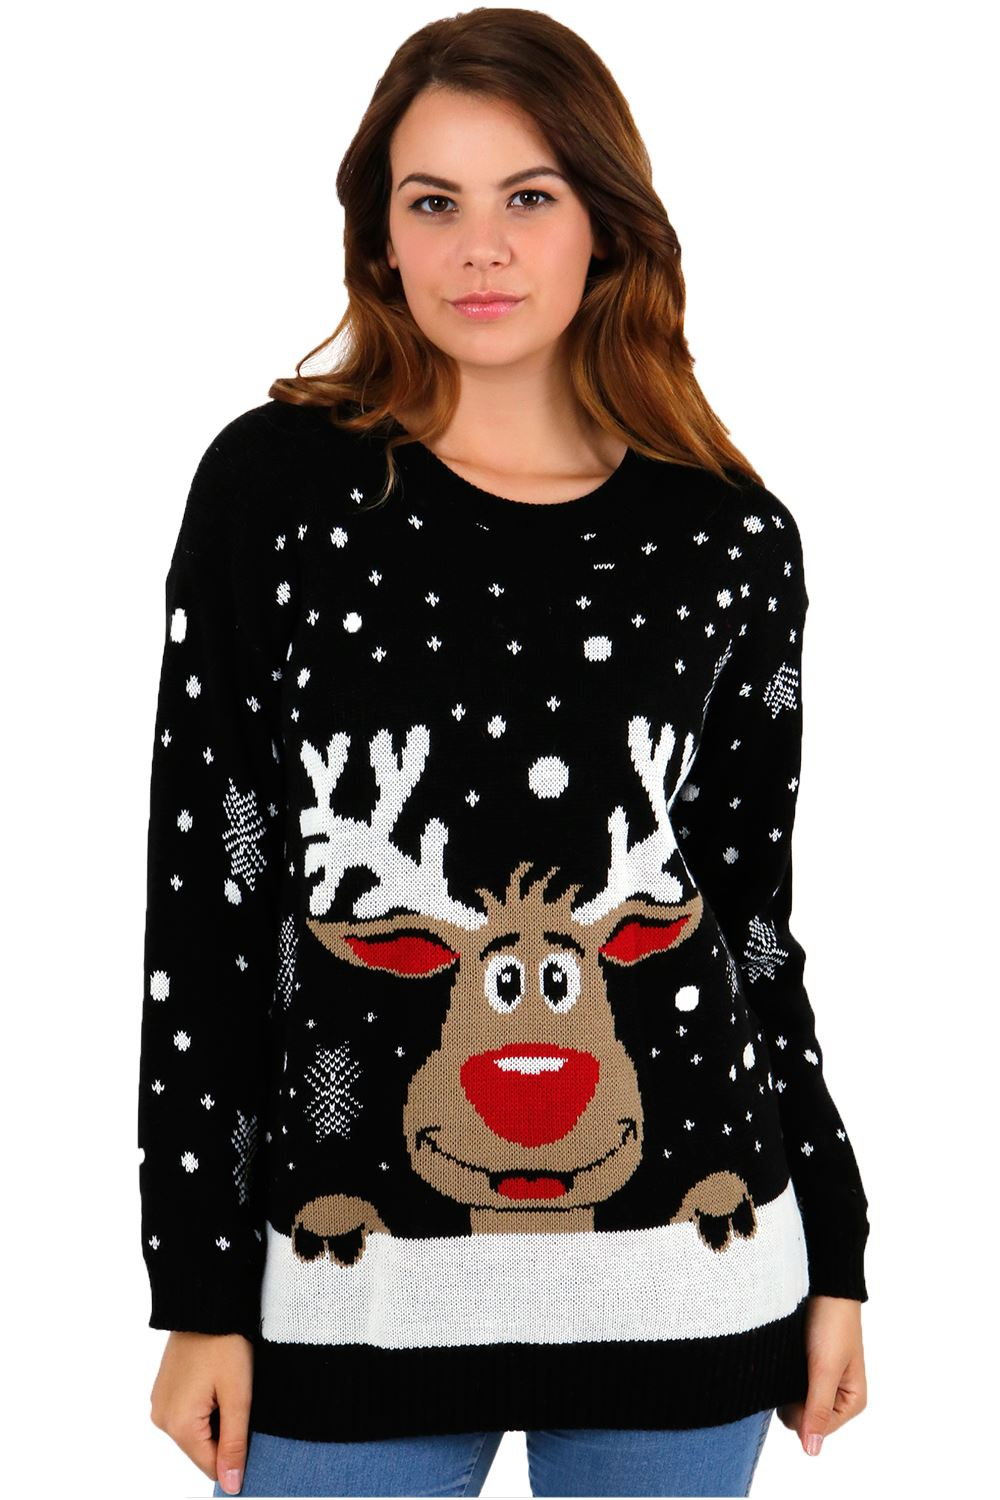 This cozy garment doesn't just stop at knitted designs; it features a plush reindeer trophy and wreath mounted against a brick pattern. If anyone asks you where you got such a cheerful reindeer head decoration, just tell them it's a family tradition.